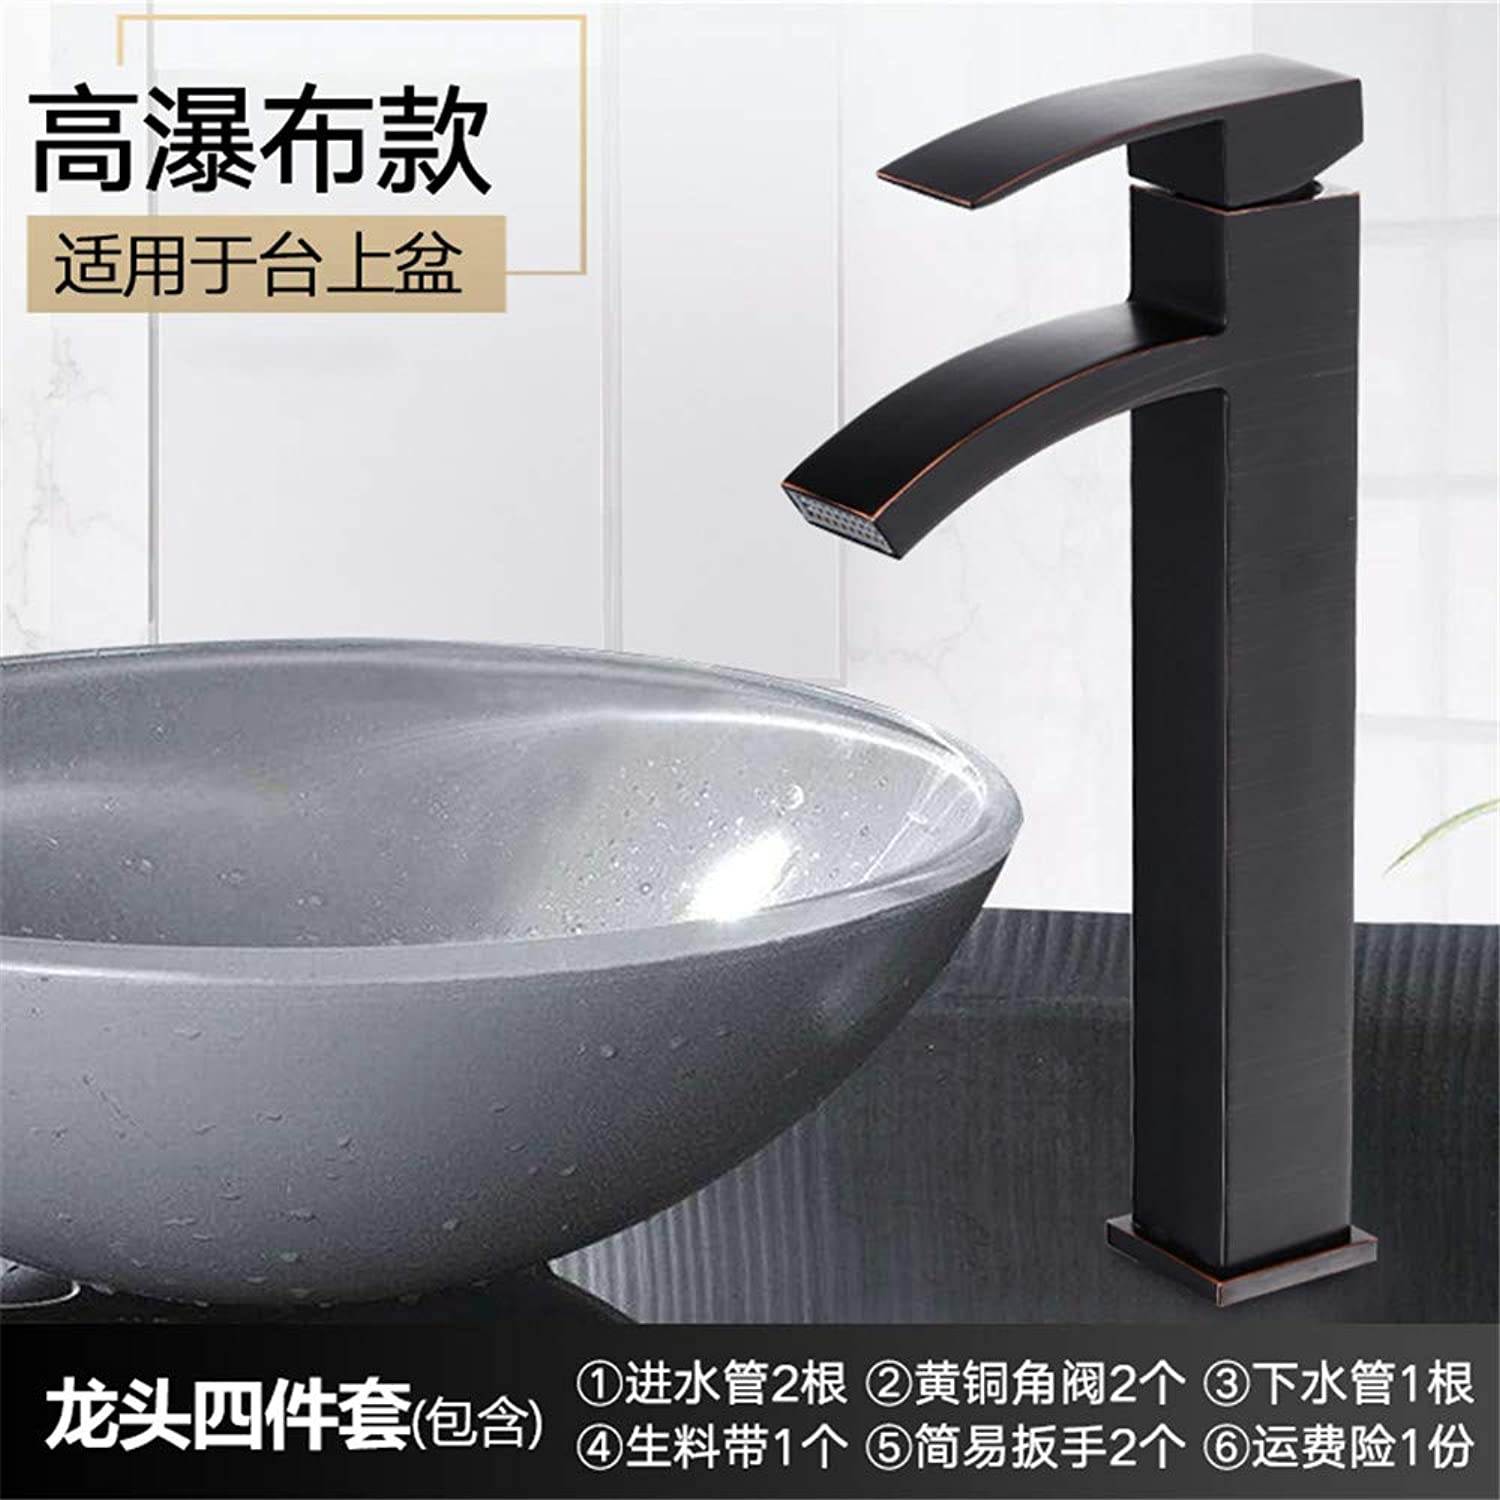 Guolaoer Faucet All Copper Hot And Cold Wash Basin Sink Faucet???Black